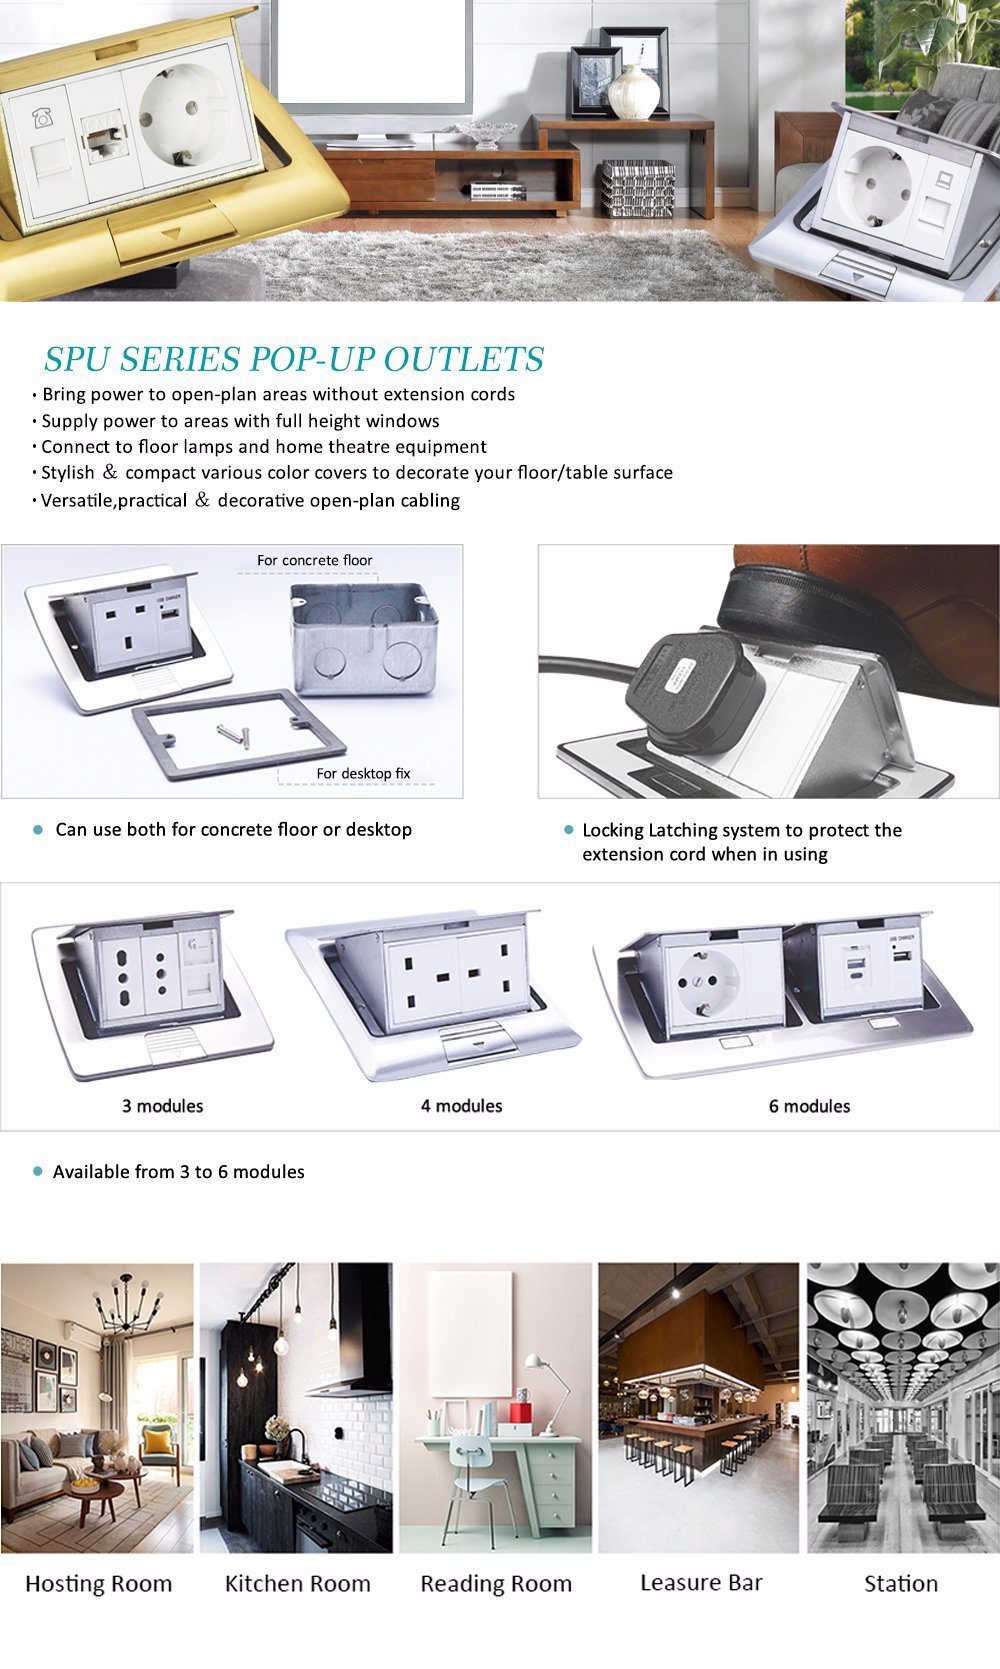 Floor Power Box Pop up Assembly Kit by Electrical Outlet ...